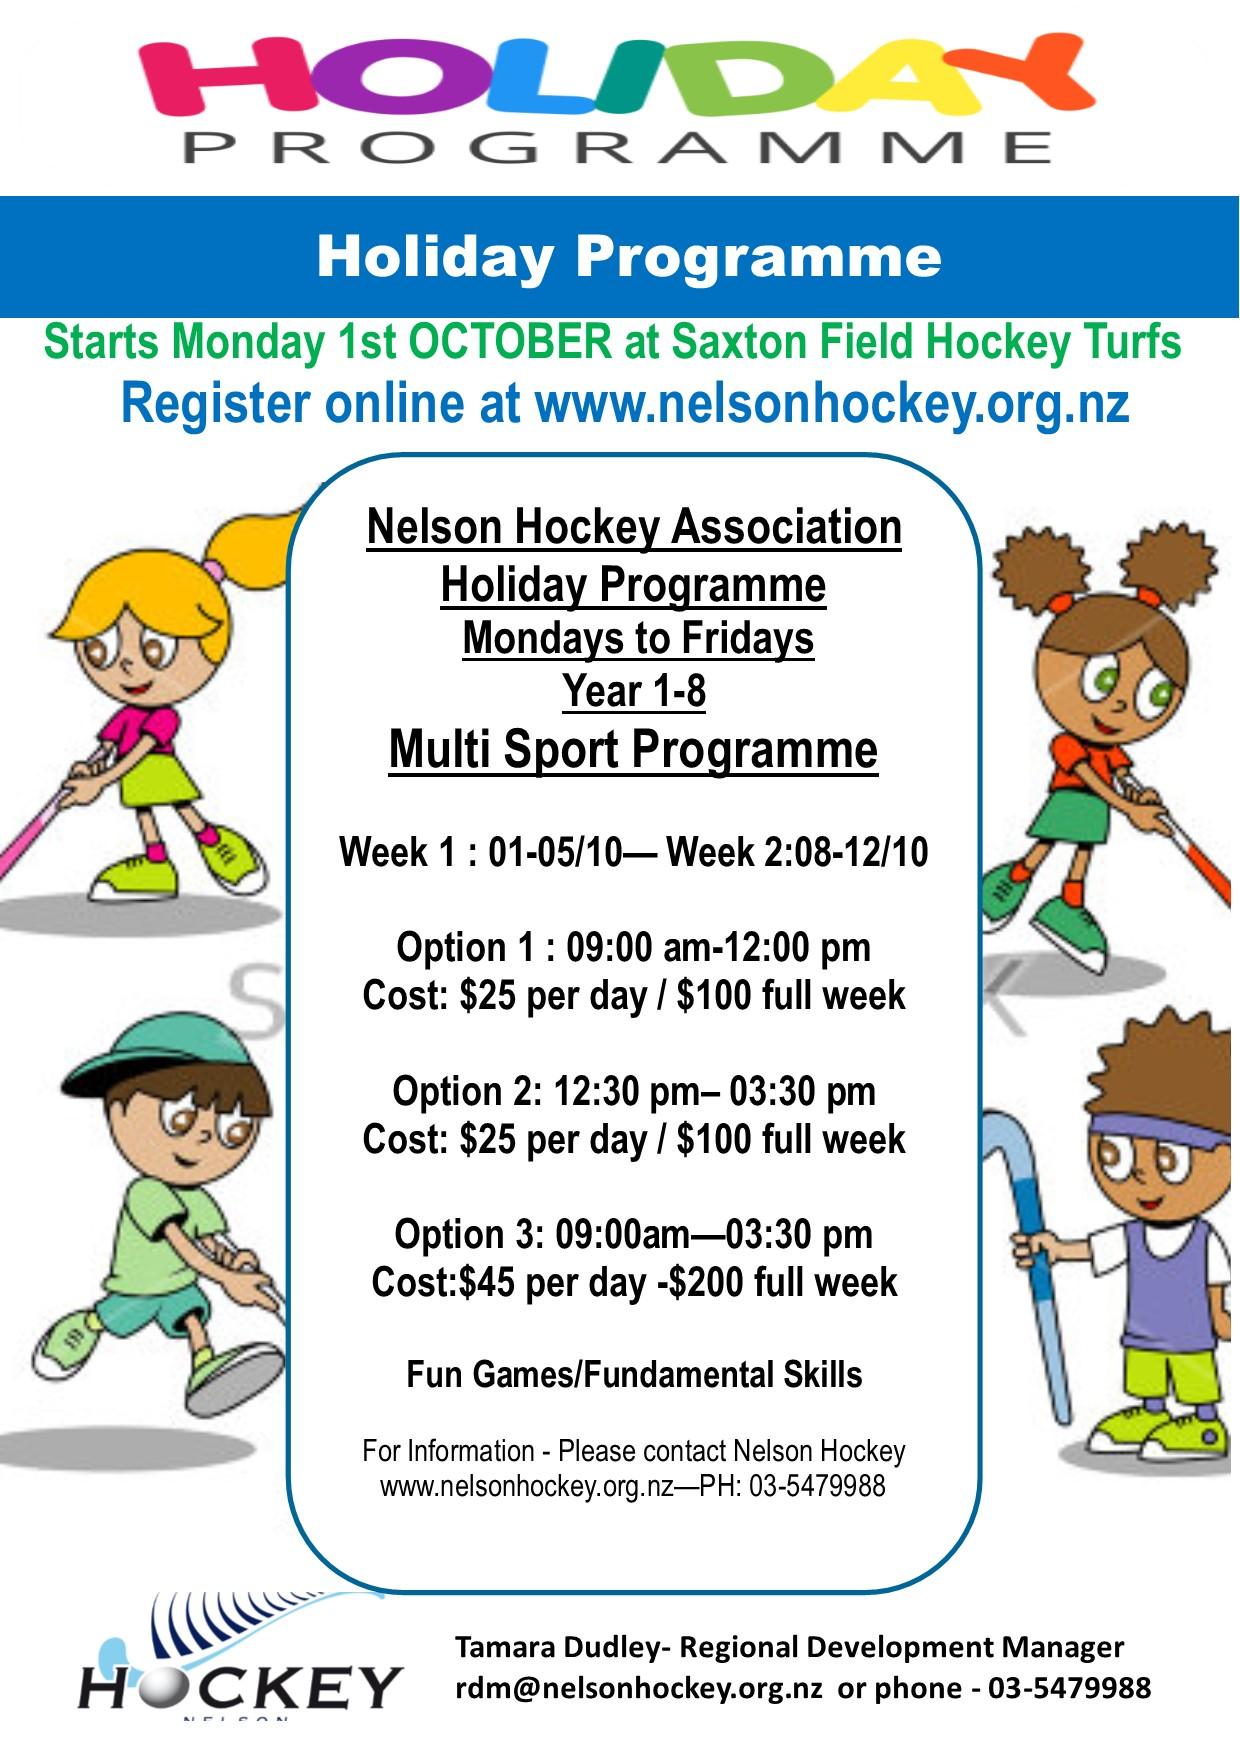 2018 NHA HOLIDAY PROGRAMME II REGISTRATIONS OPEN!!! NHA will